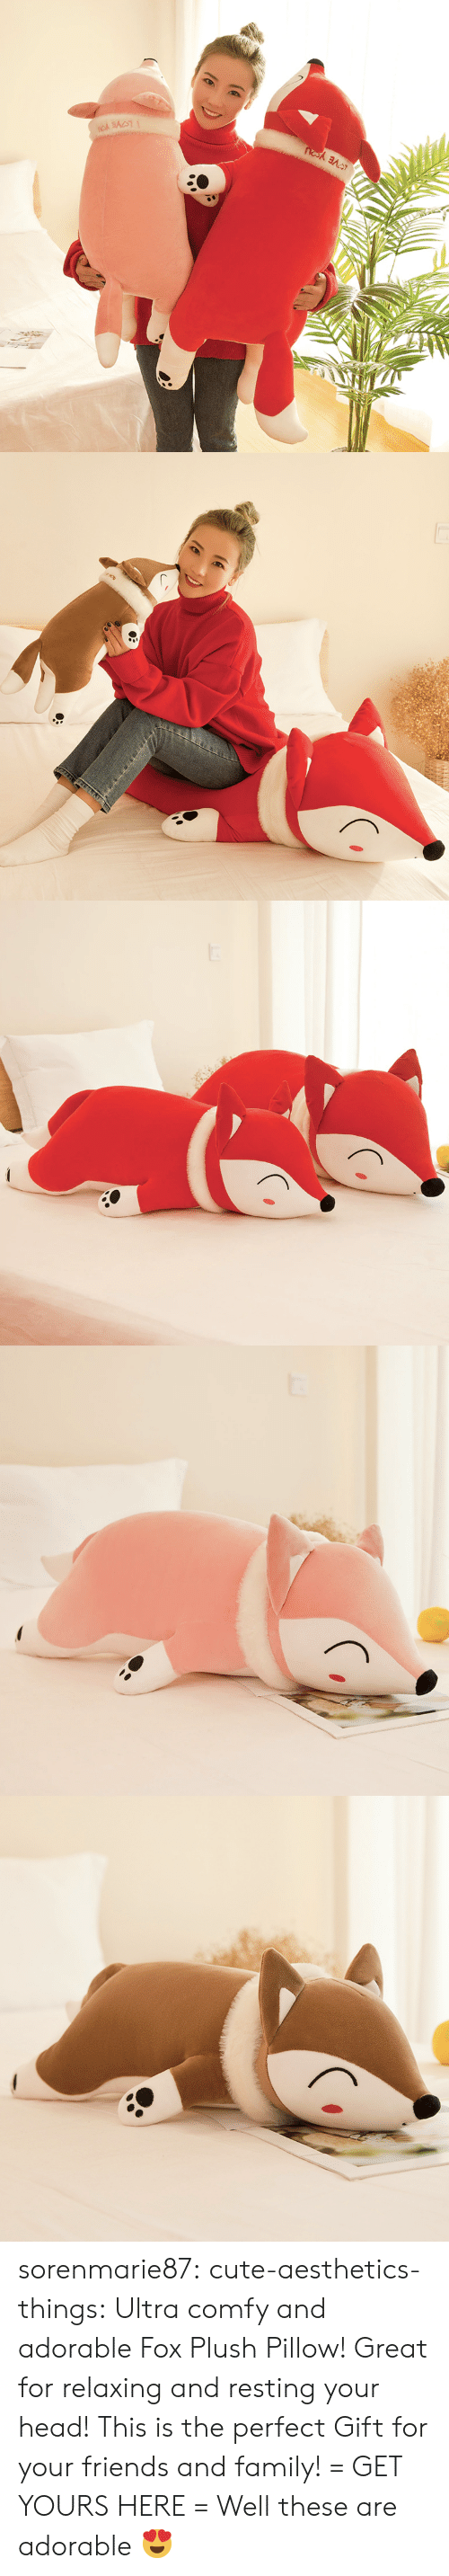 Cute, Family, and Friends: sorenmarie87: cute-aesthetics-things:  Ultra comfy and adorable Fox Plush Pillow! Great for relaxing and resting your head! This is the perfect Gift for your friends and family! = GET YOURS HERE =   Well these are adorable 😍